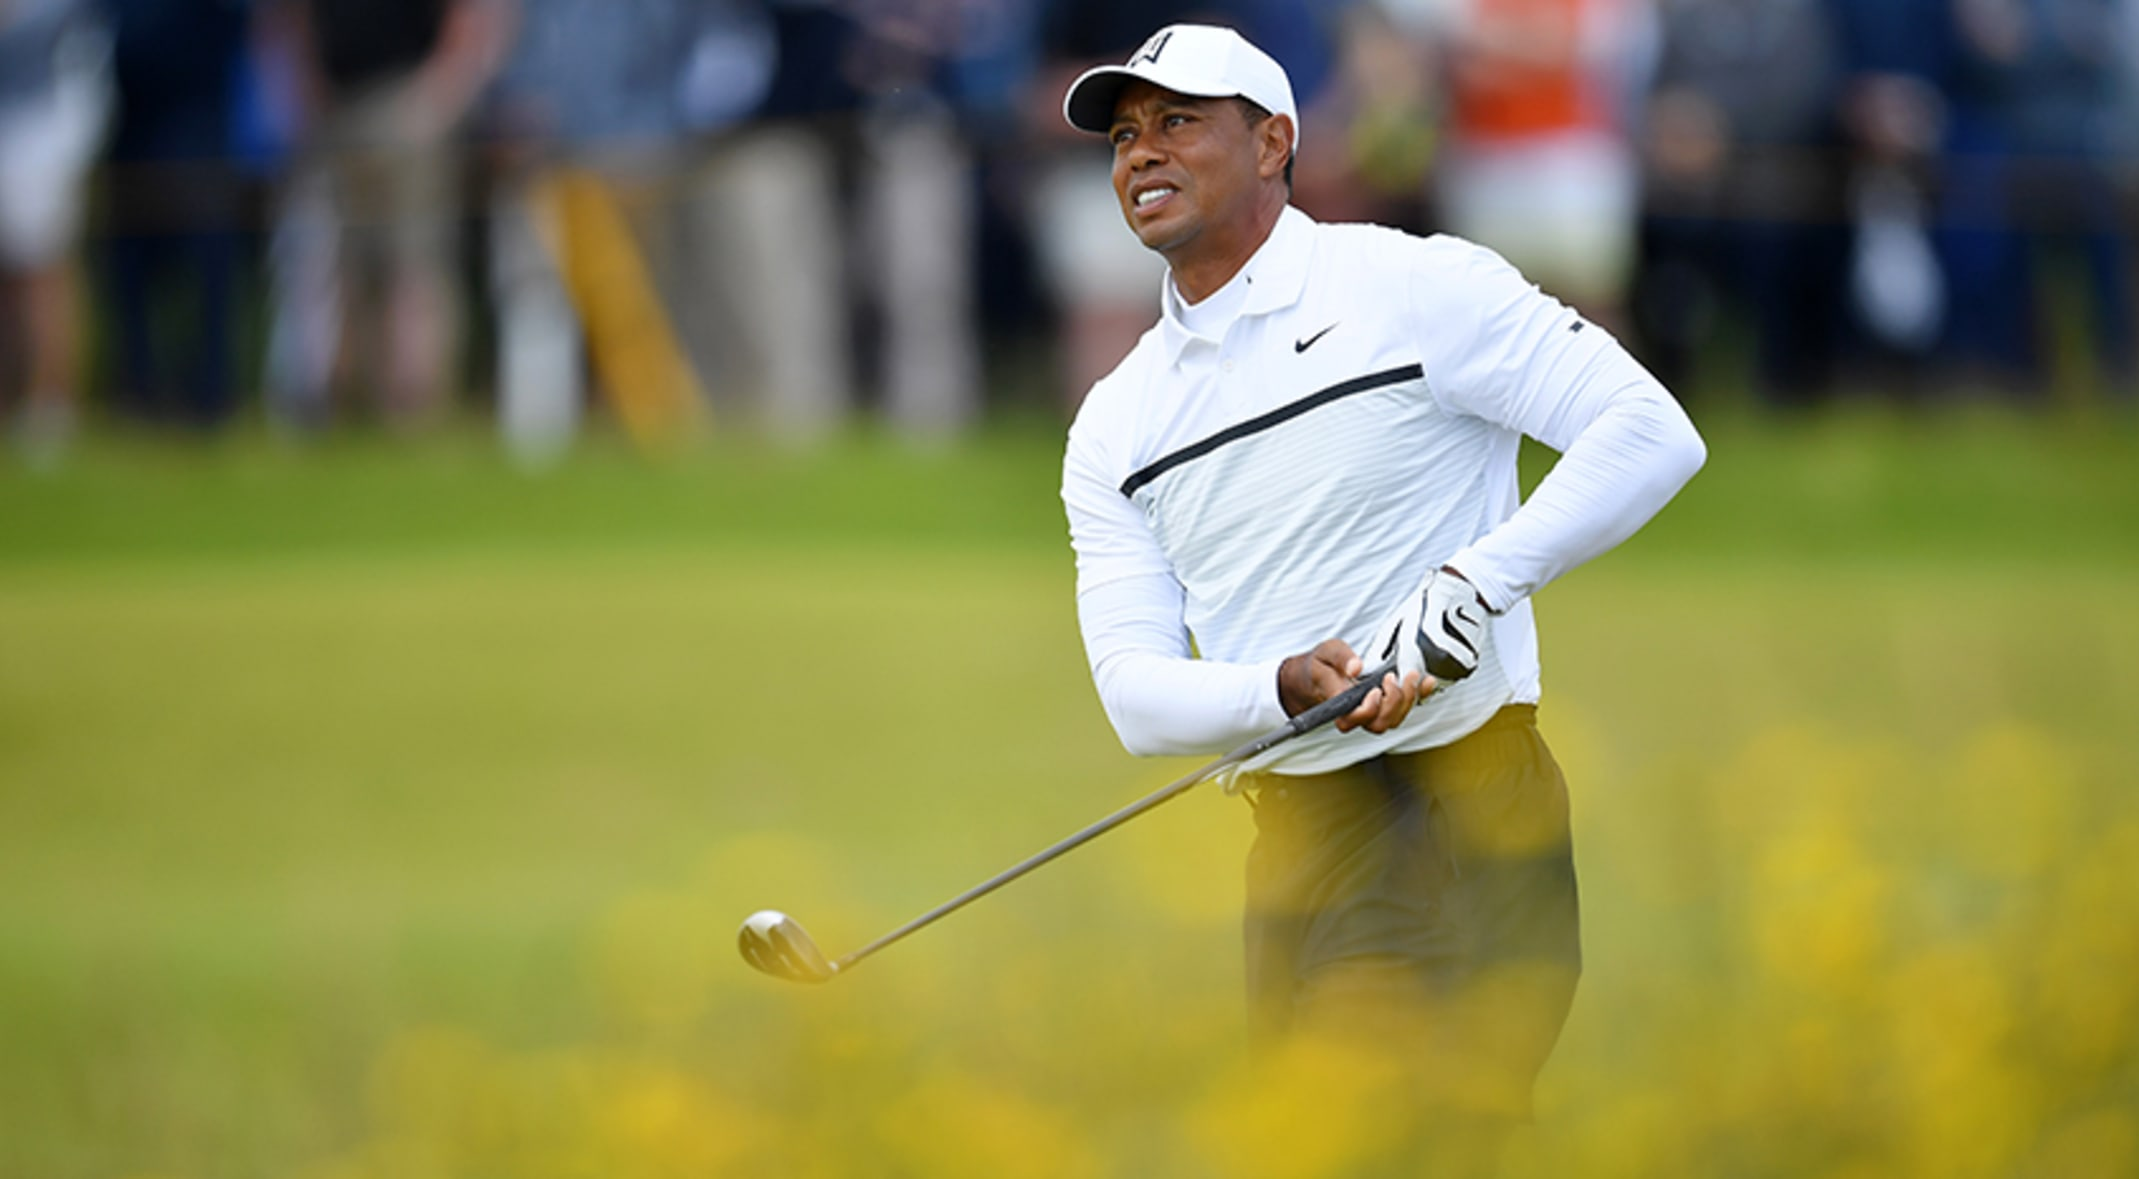 Tiger Woods Cards 70 In Round 2 Of The Open